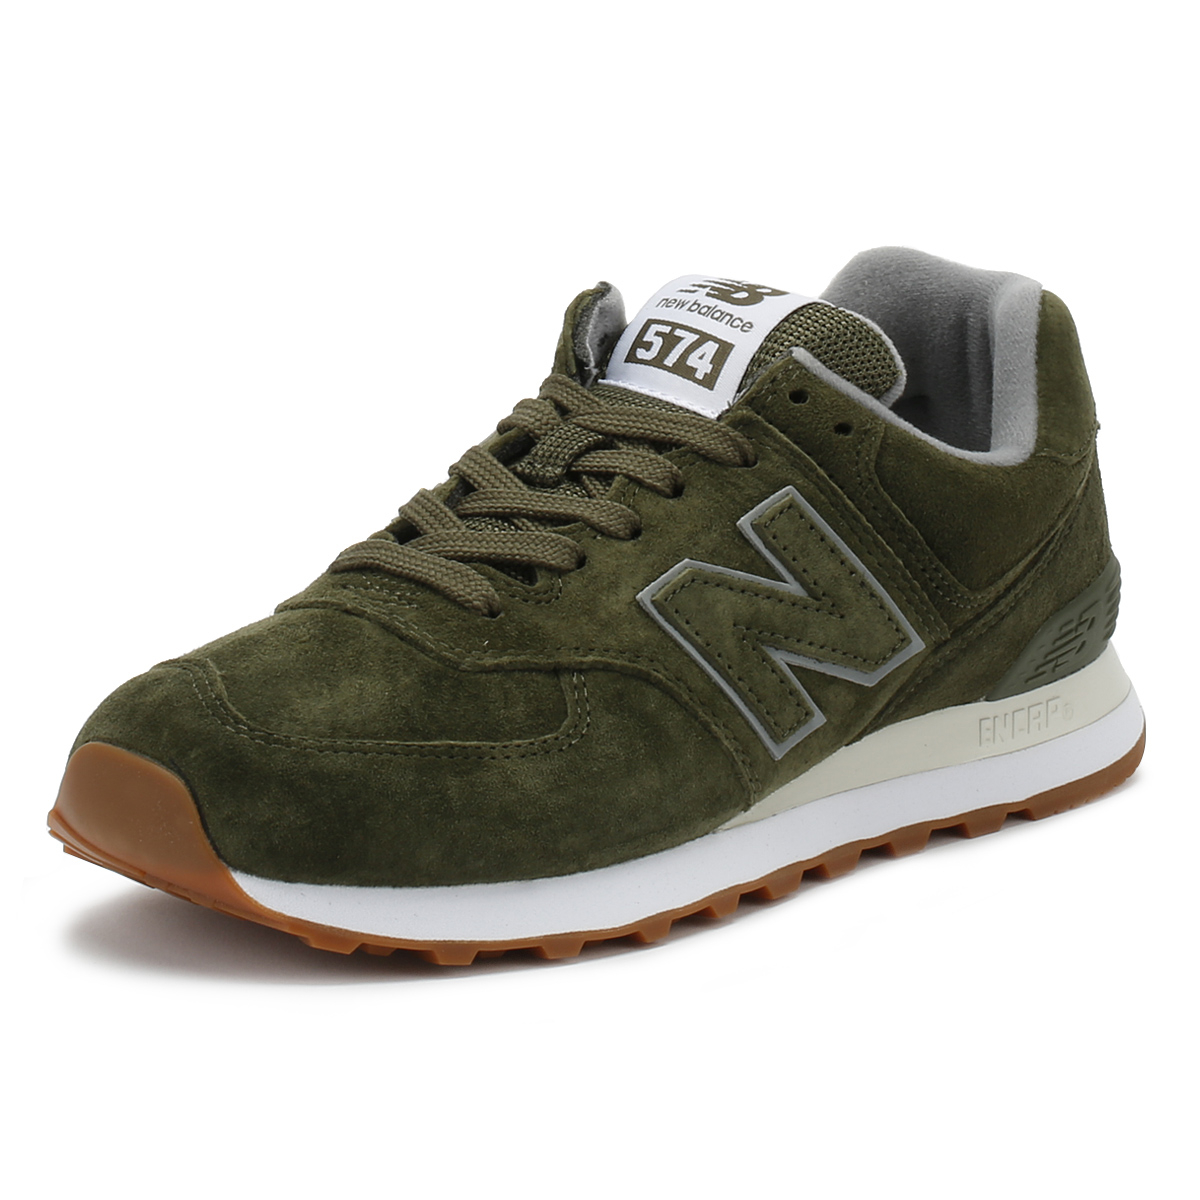 chaussures New Balance eco friendly